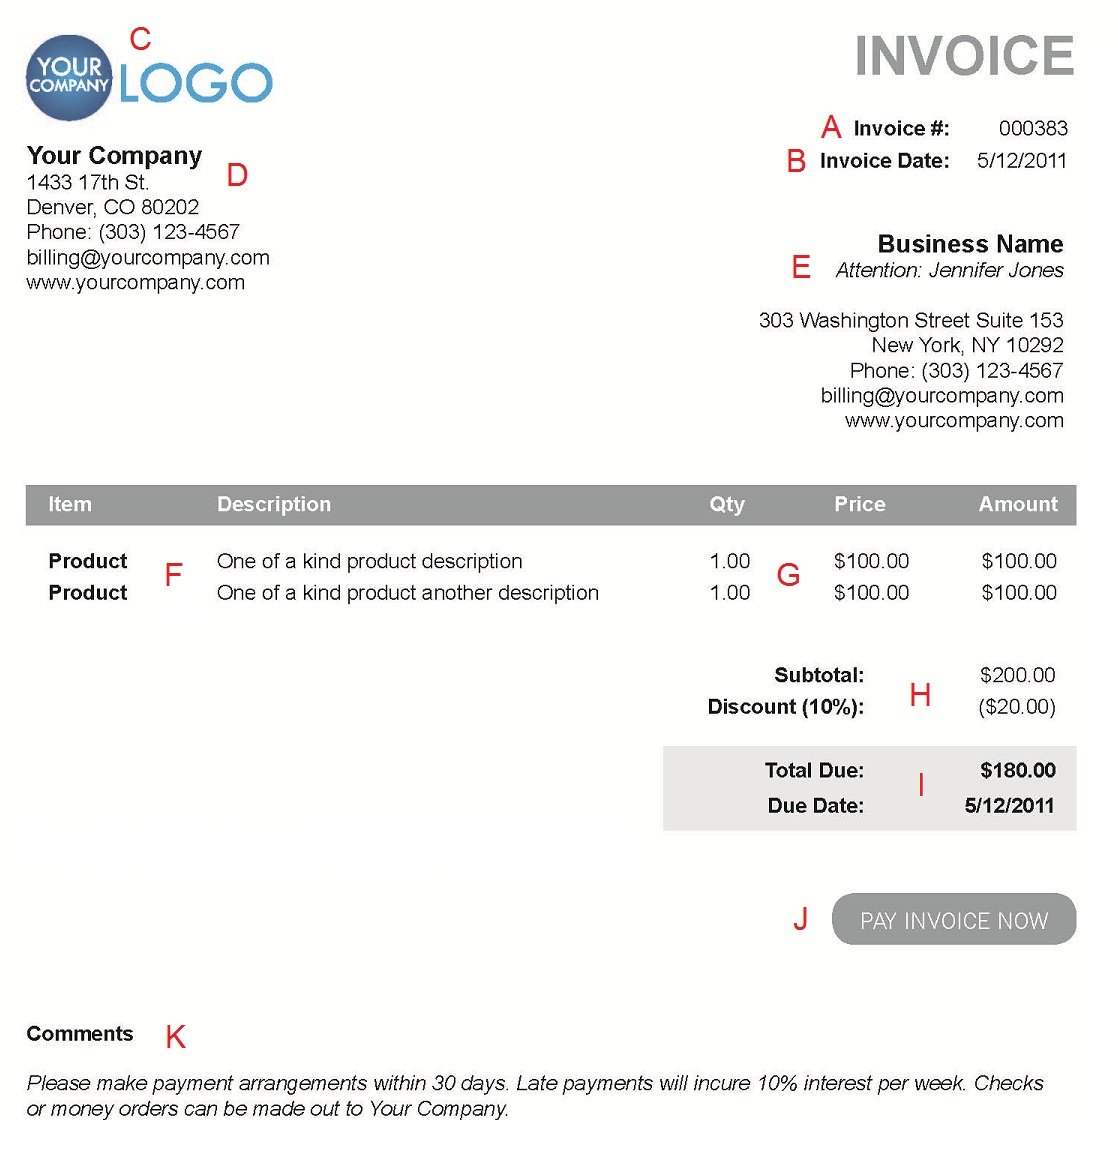 Angkajituus  Gorgeous The  Different Sections Of An Electronic Payment Invoice With Exquisite A  With Delightful Free Work Invoice Template Also Invoice Due In Addition Proposal Invoice Template And Excel Invoice Template  As Well As Simple Excel Invoice Template Additionally Ups Commercial Invoice Pdf From Paysimplecom With Angkajituus  Exquisite The  Different Sections Of An Electronic Payment Invoice With Delightful A  And Gorgeous Free Work Invoice Template Also Invoice Due In Addition Proposal Invoice Template From Paysimplecom